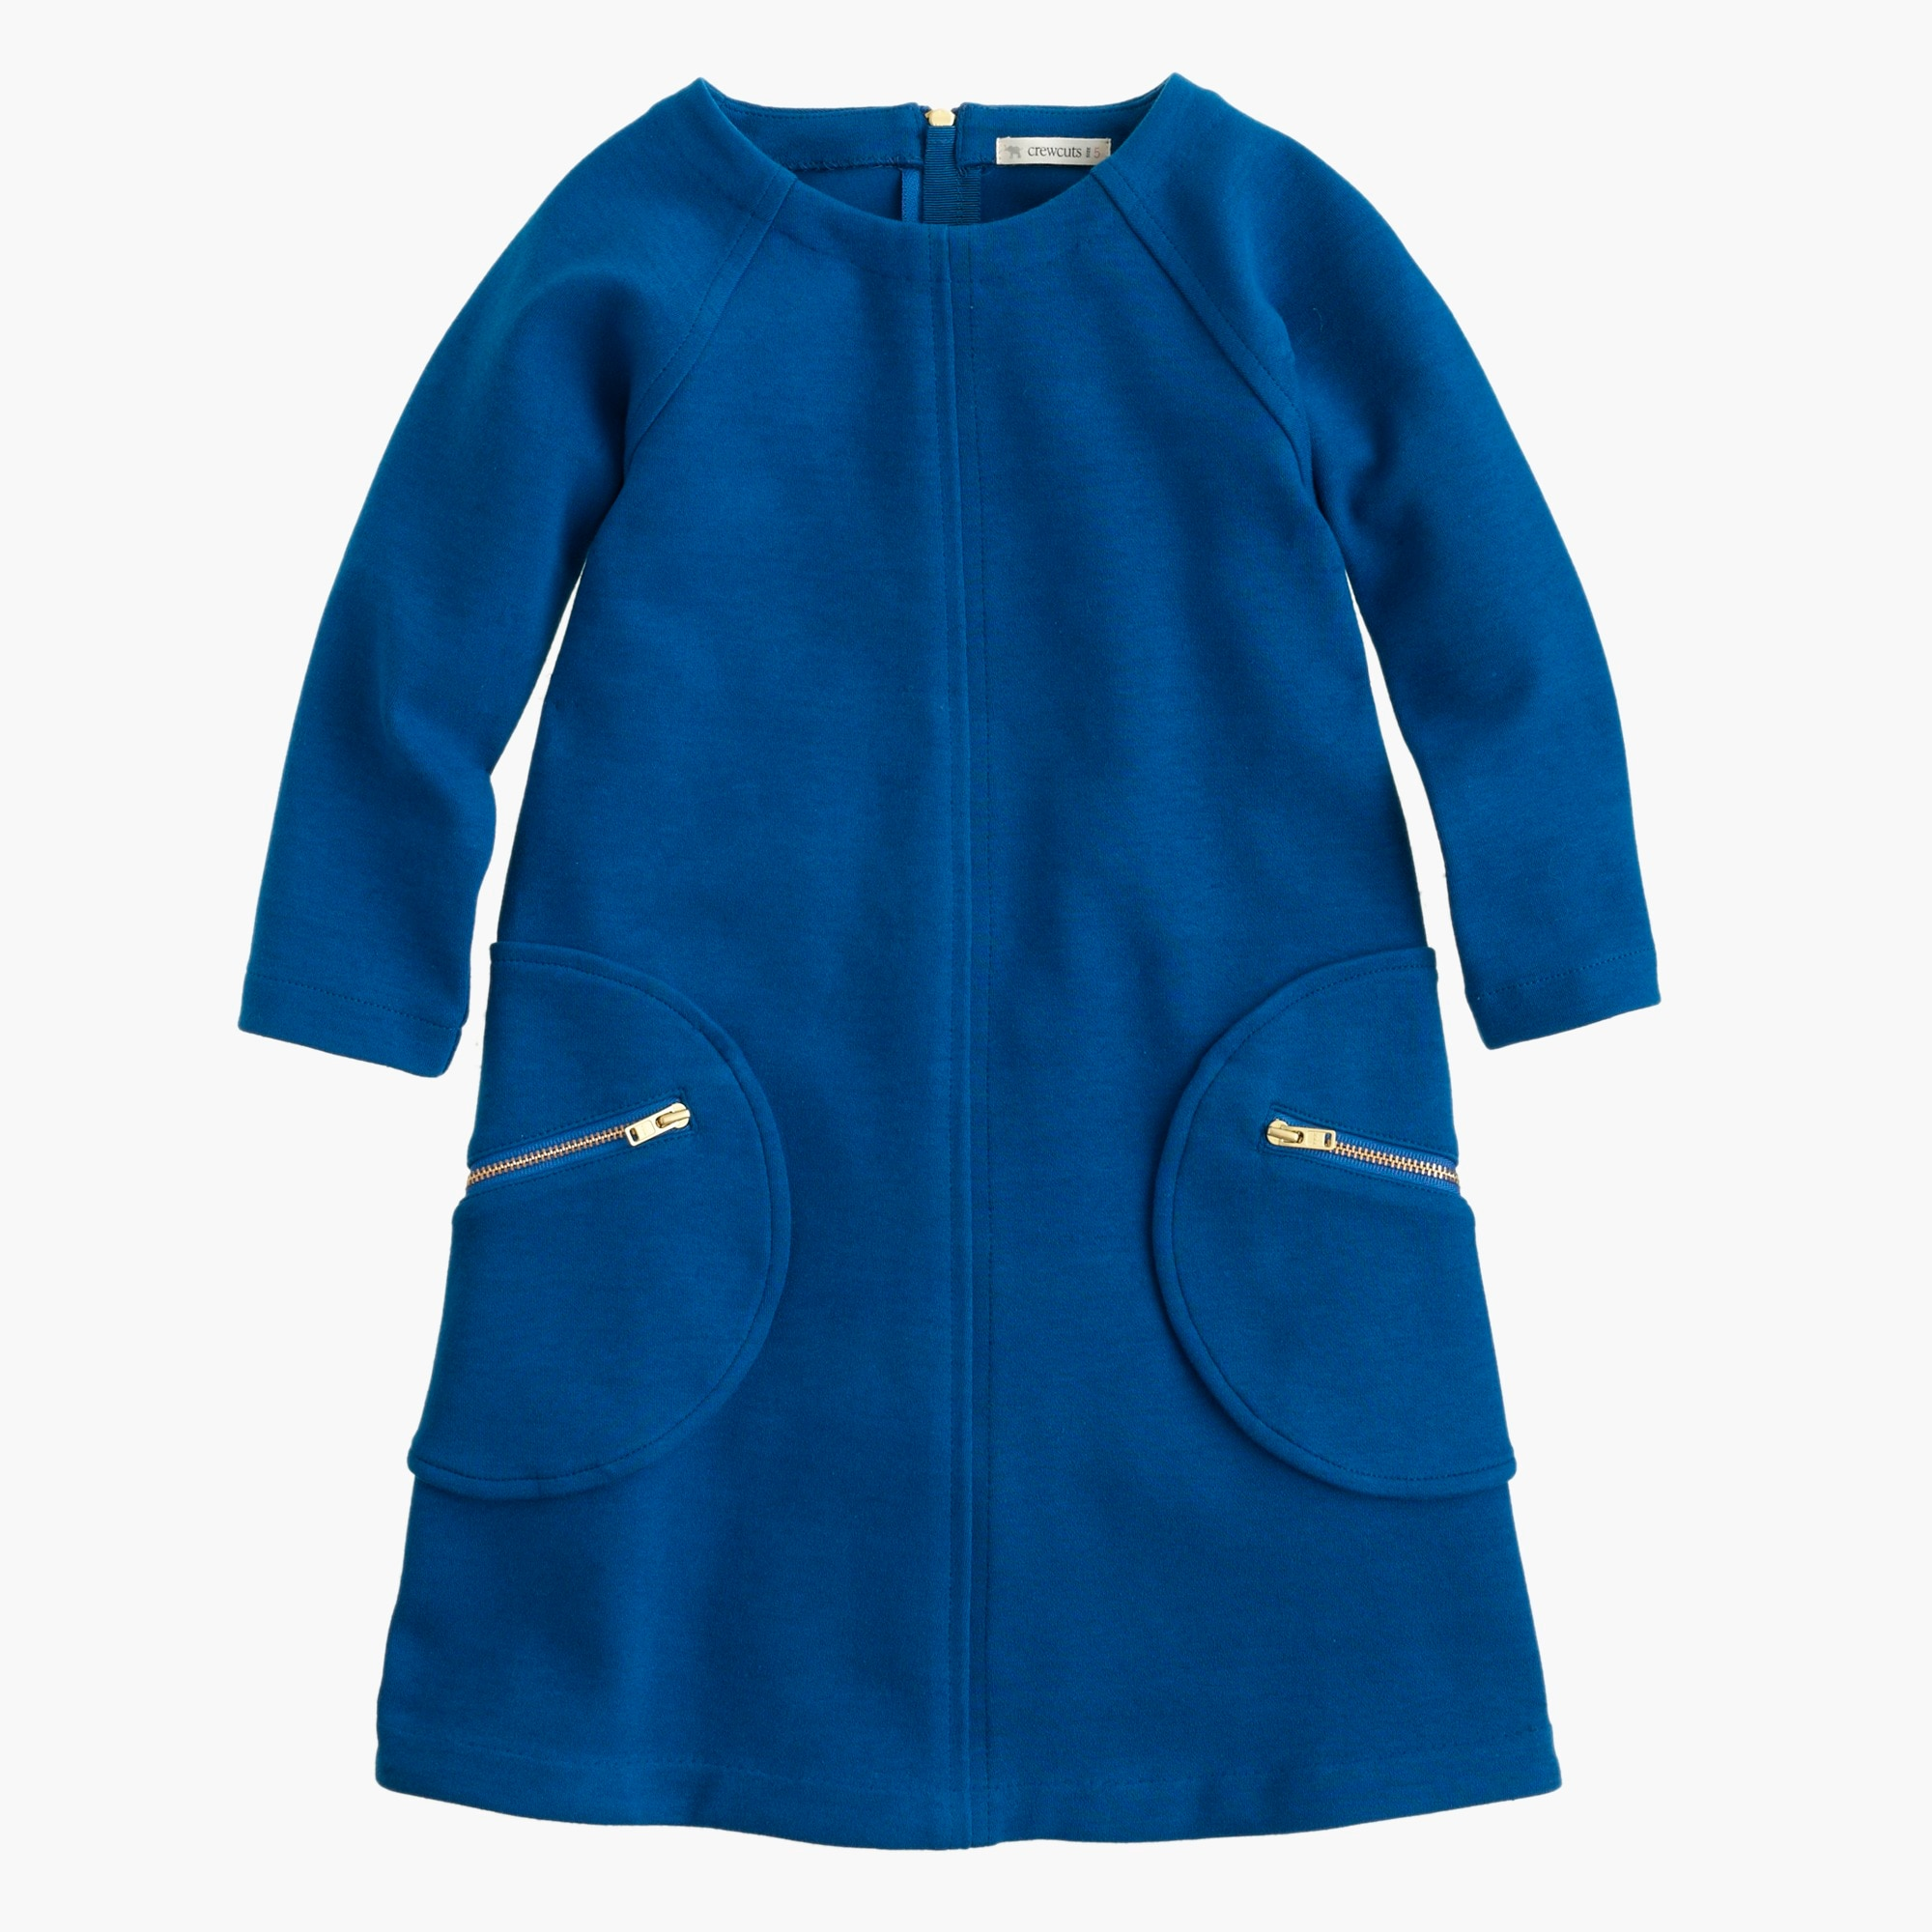 girls' shift dress with zippers : girls' dresses